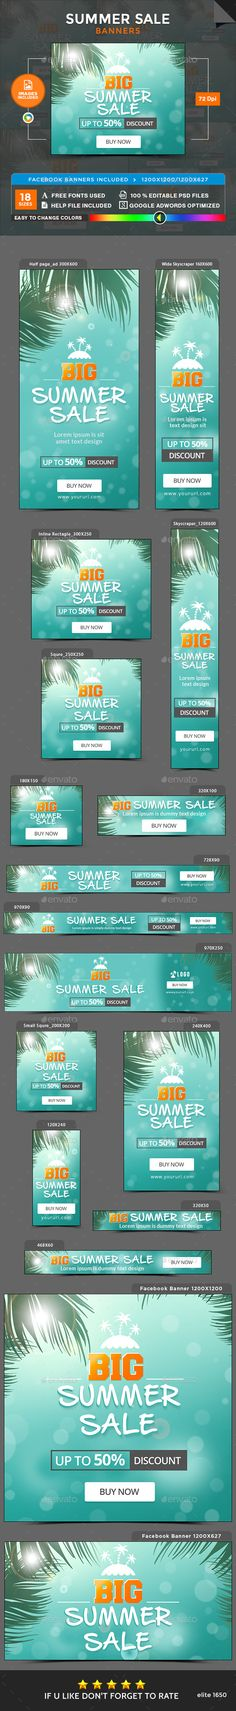 Summer Sale Banners - Images Included - Template PSD. Download here: https://graphicriver.net/item/summer-sale-banners-images-included/17104674?ref=ksioks